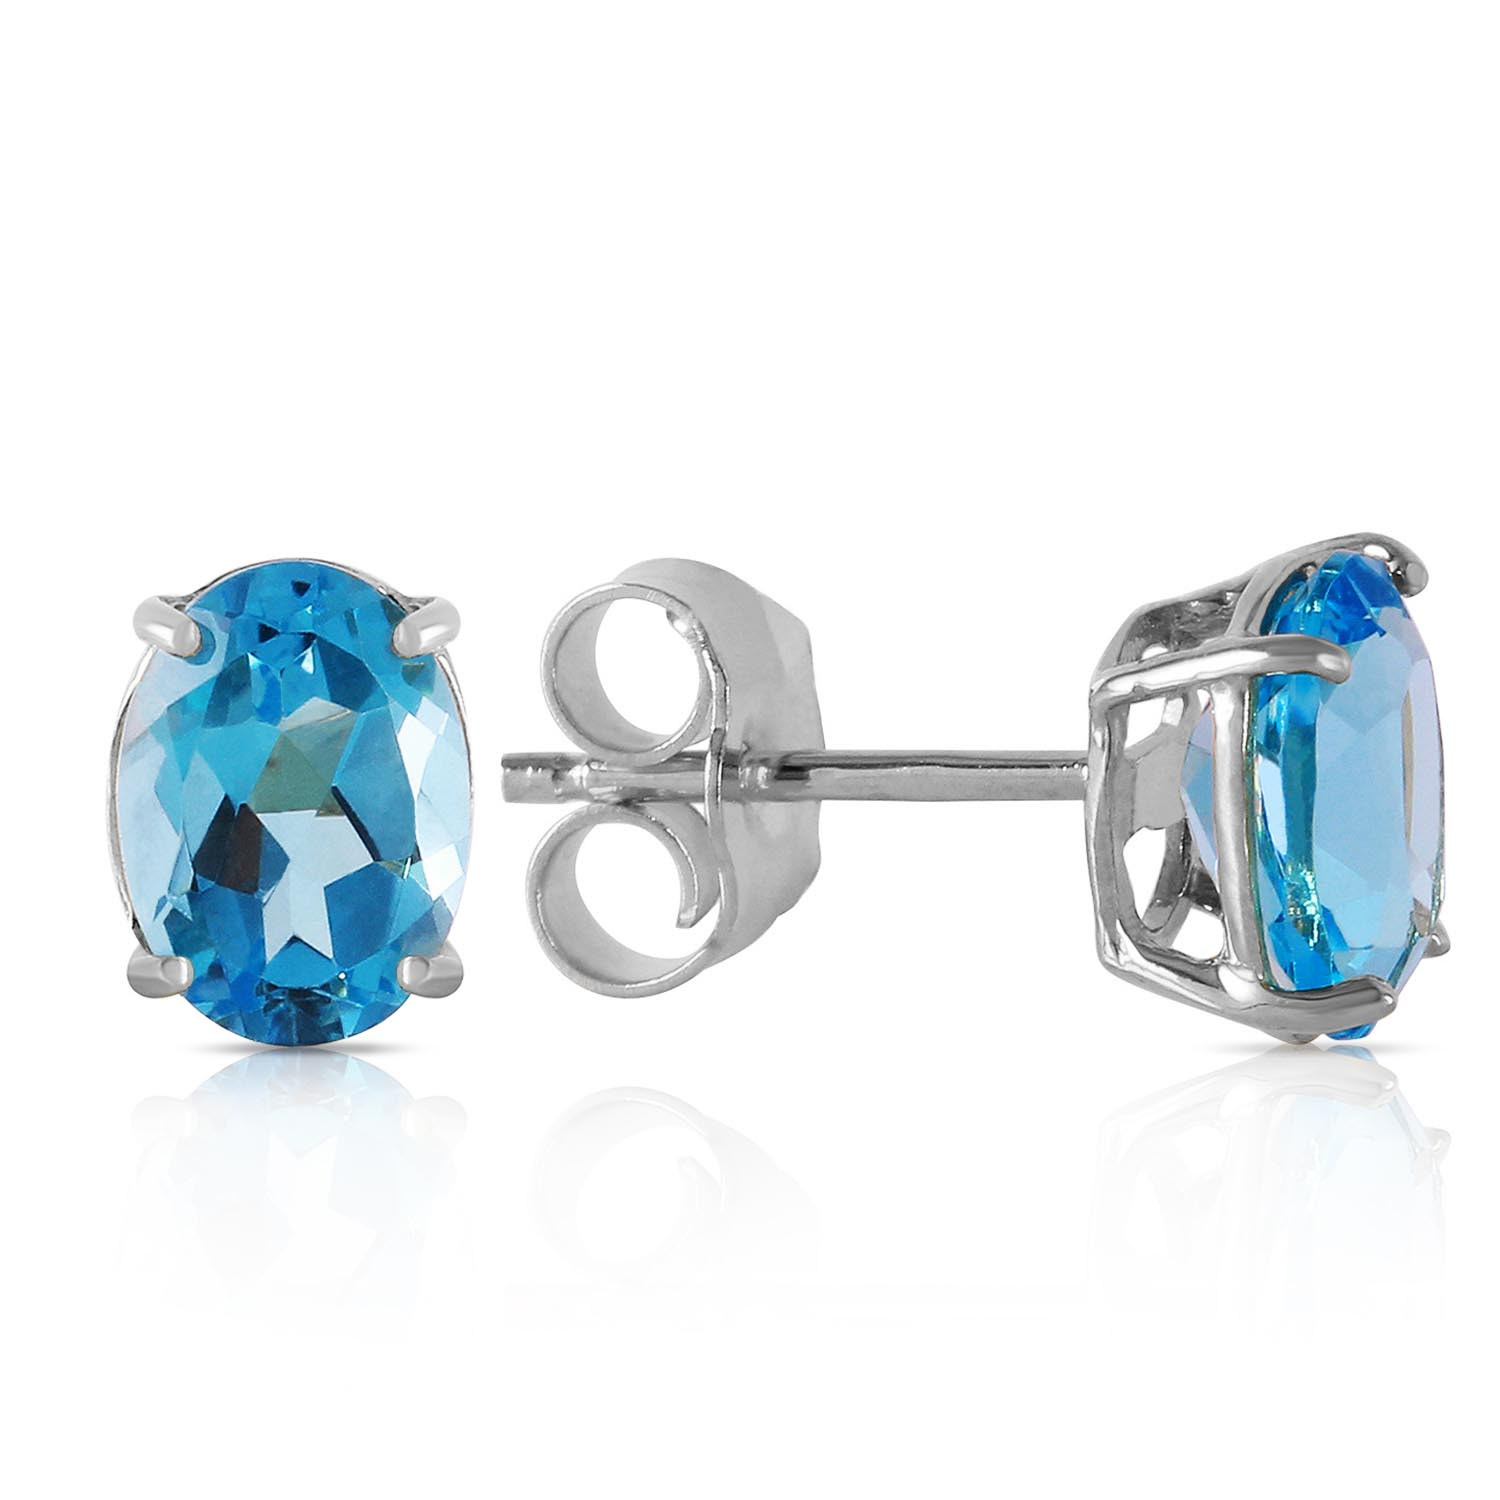 Blue Topaz Stud Earrings 1.8ctw in 9ct White Gold